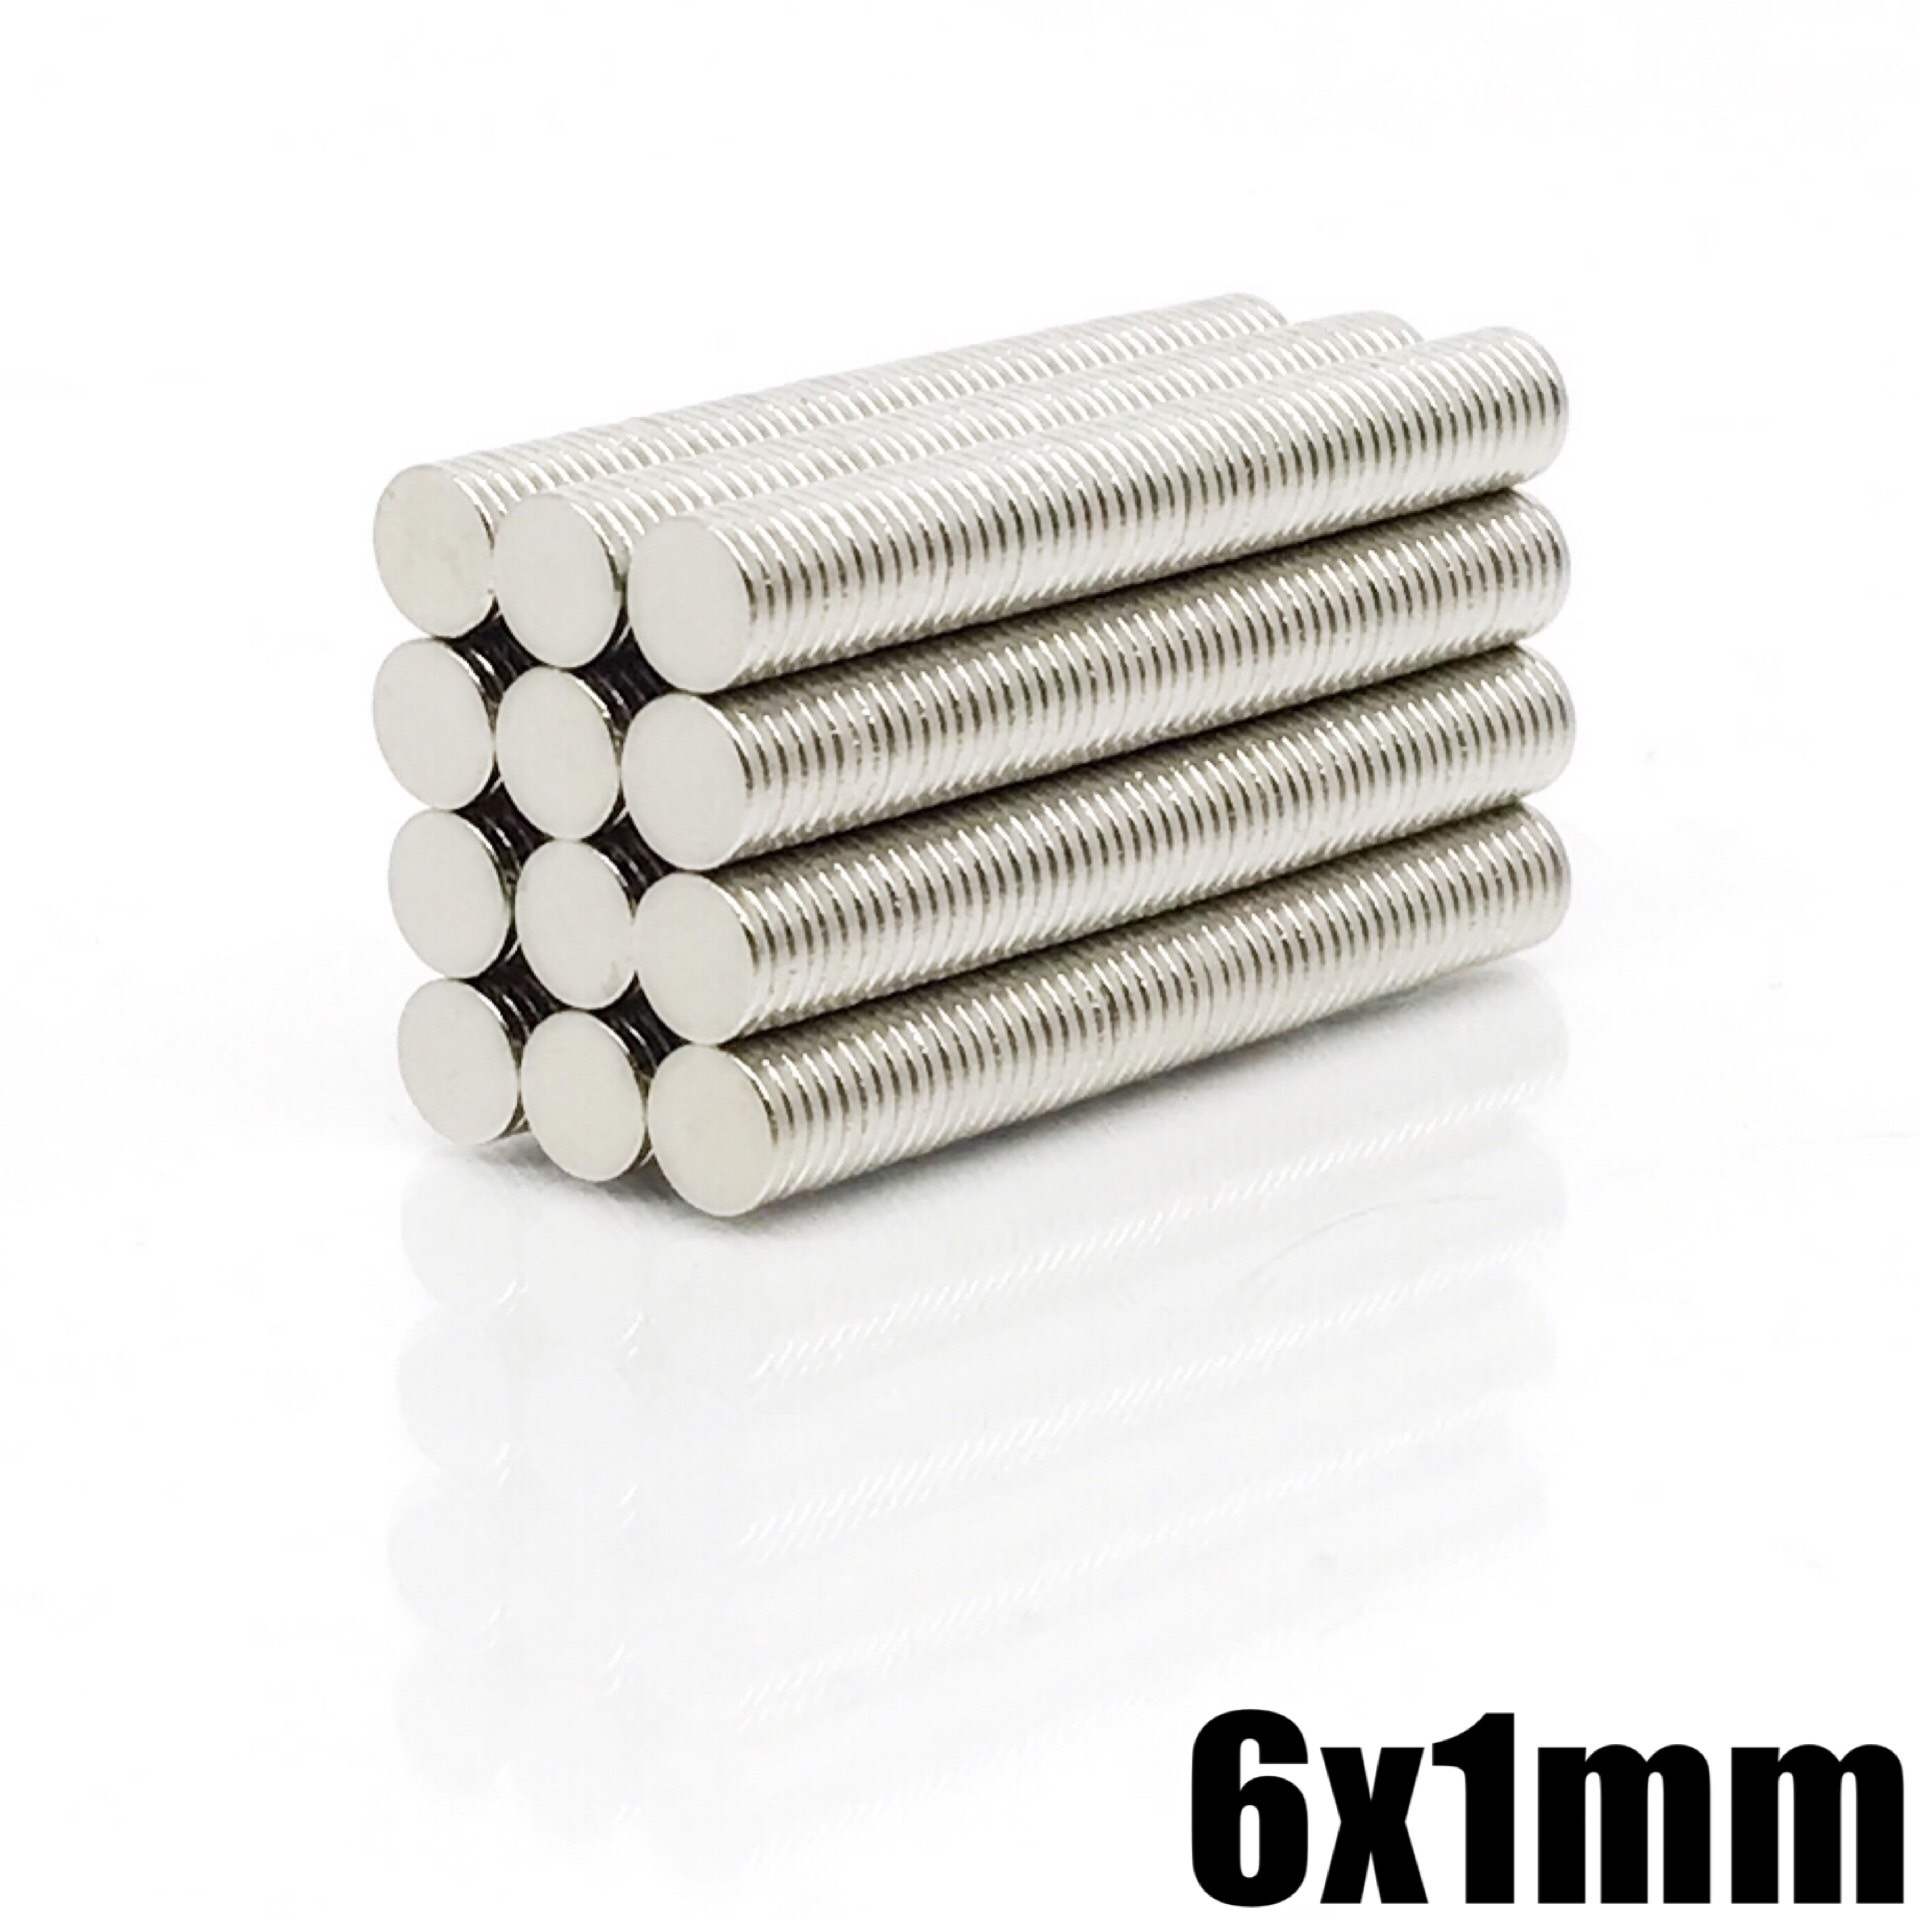 20/50/100/200/500/1000Pcs 6X1 Strong Cylinder Rare Earth Magnet Neodymium Bulk Sheet N35 Mini Small Round Magnets Disc 6*1